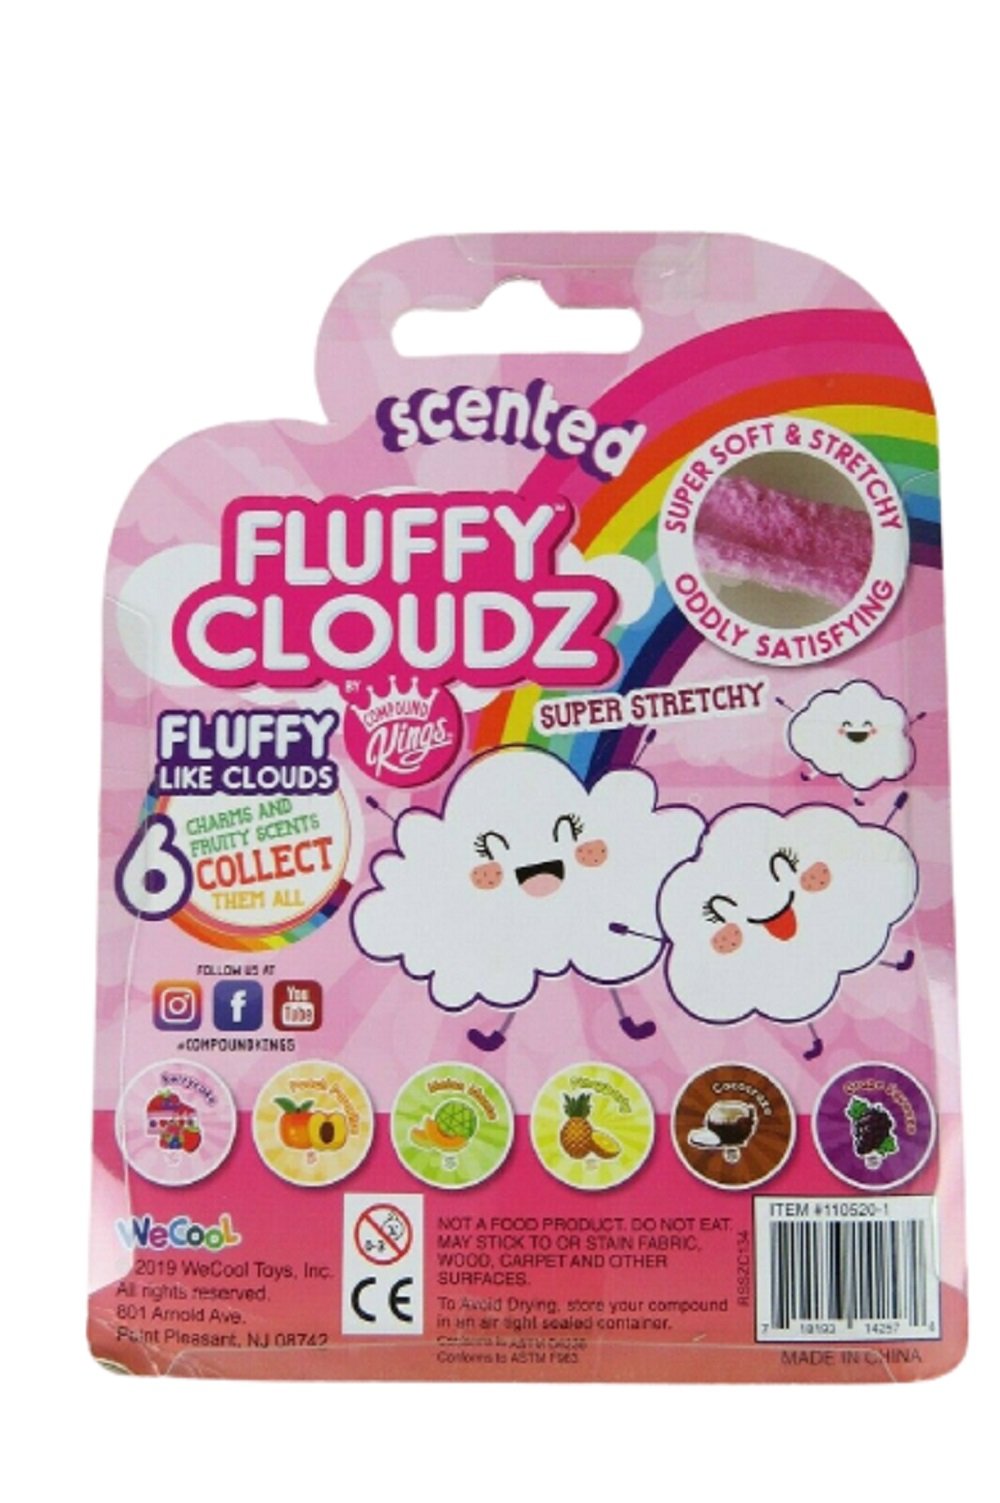 COMPOUND KINGS Slime Fluffy Cloudz Scented 3 Pack Super Stretchy 8.6 Oz